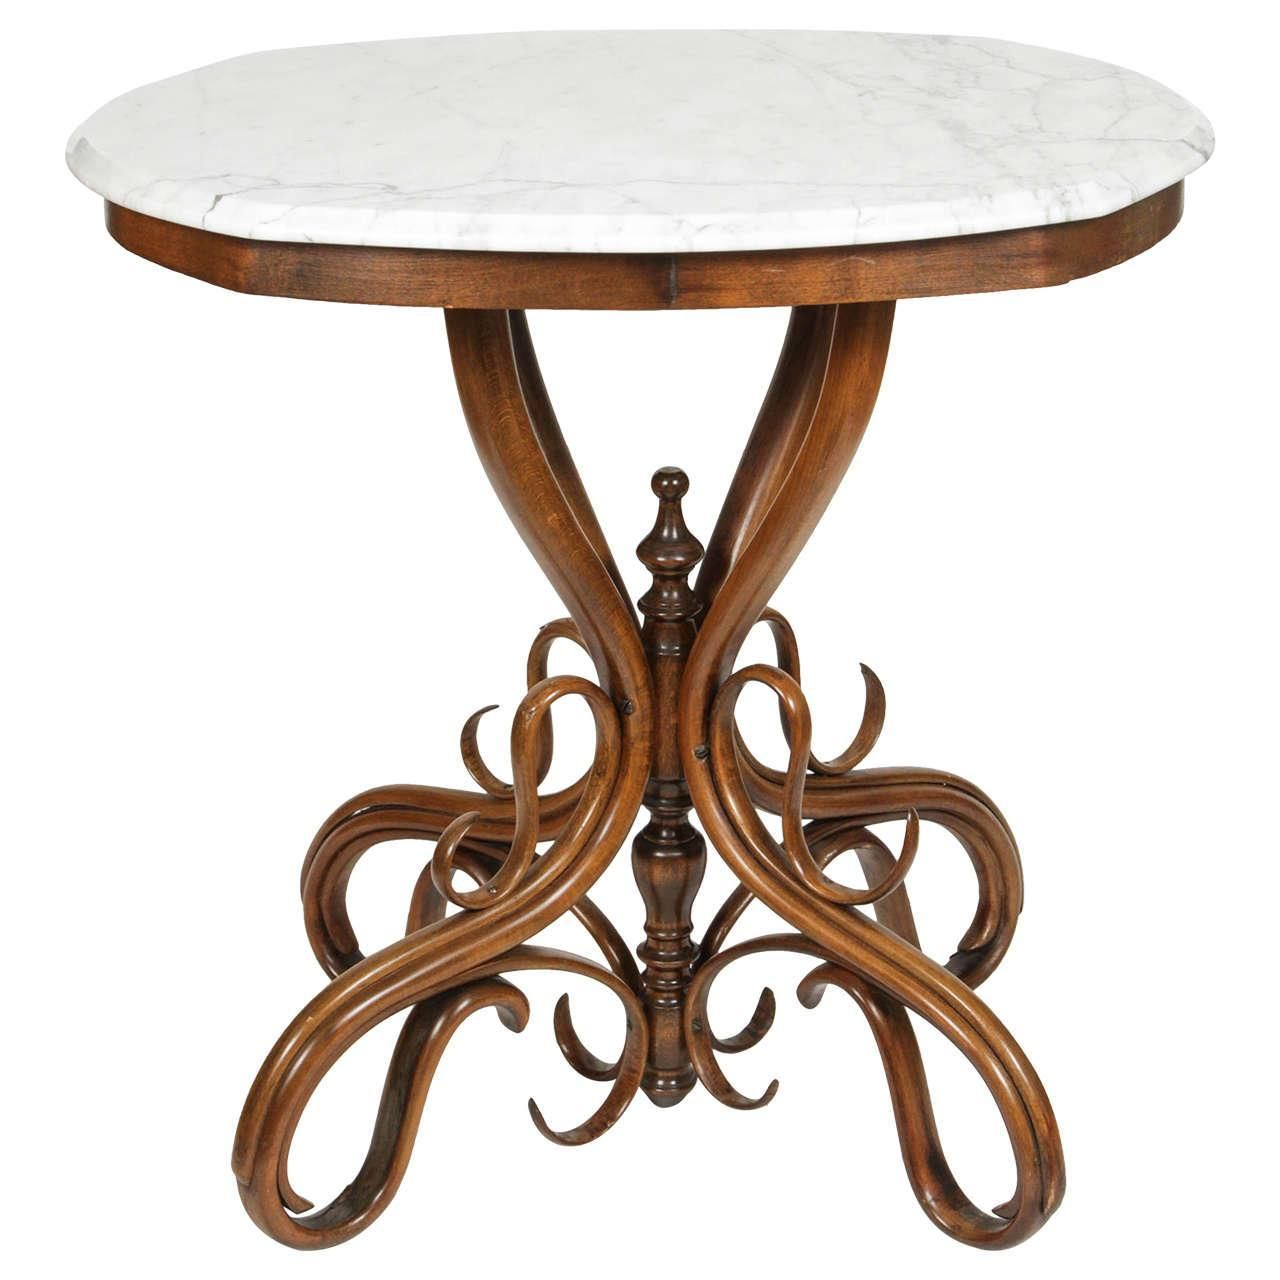 Attractive A Thonet Bentwood Side Table With Marble Top. Bentwood Pedestal Base With  Turned Standard.